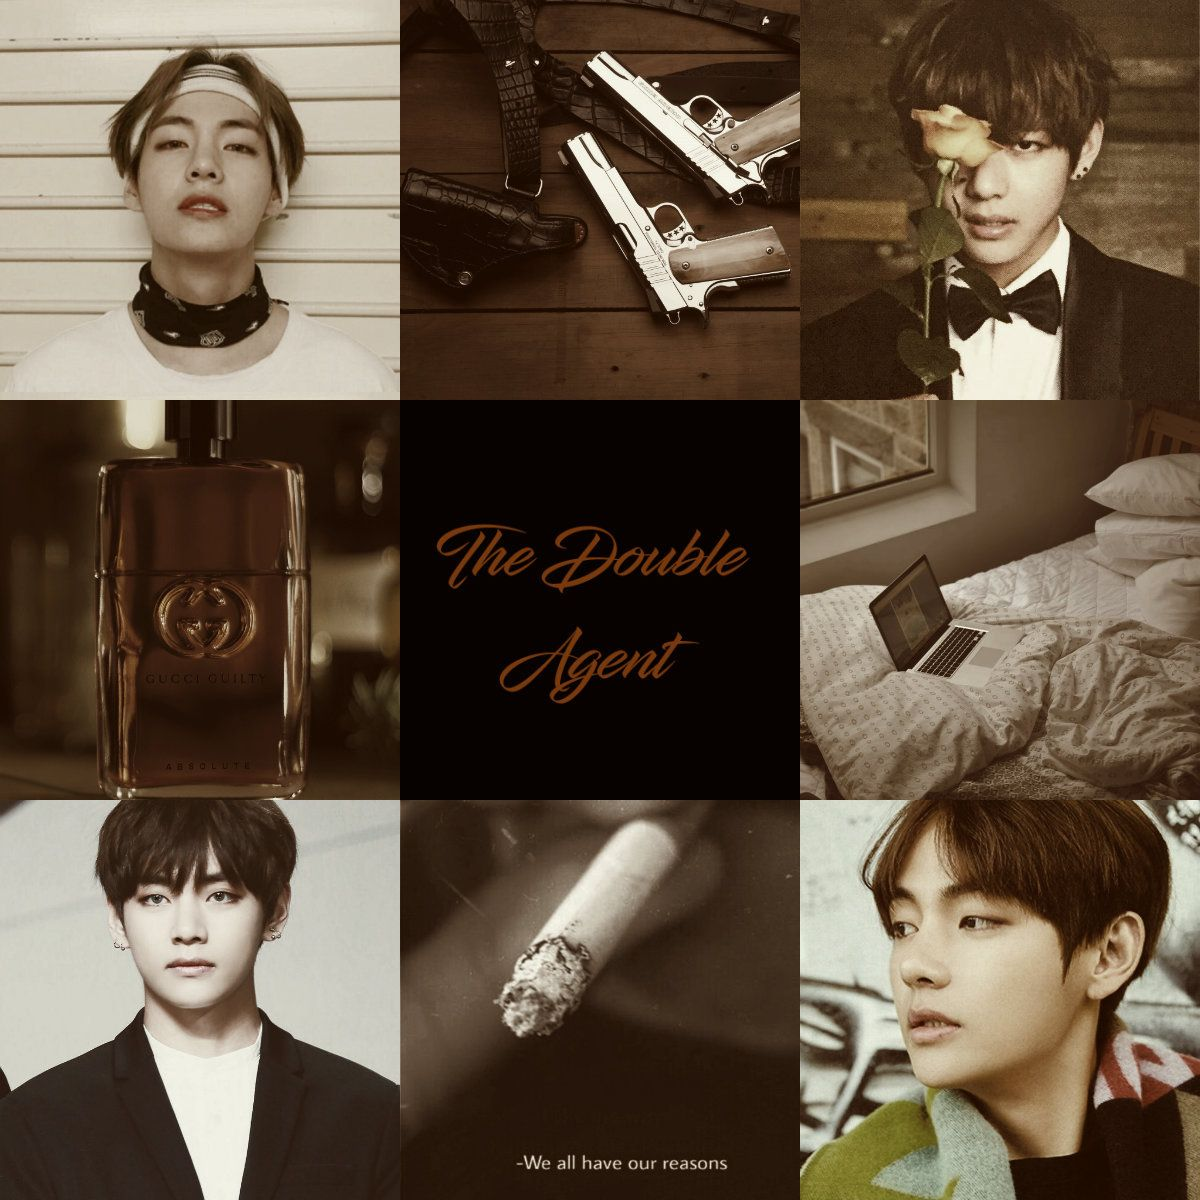 Bangtan Mafia Au By Jeanchevaljean And Confessionsofashyfangirl Inspired By House Of Cards By Sugamins The Operation Meninos Bts Bts Meninas